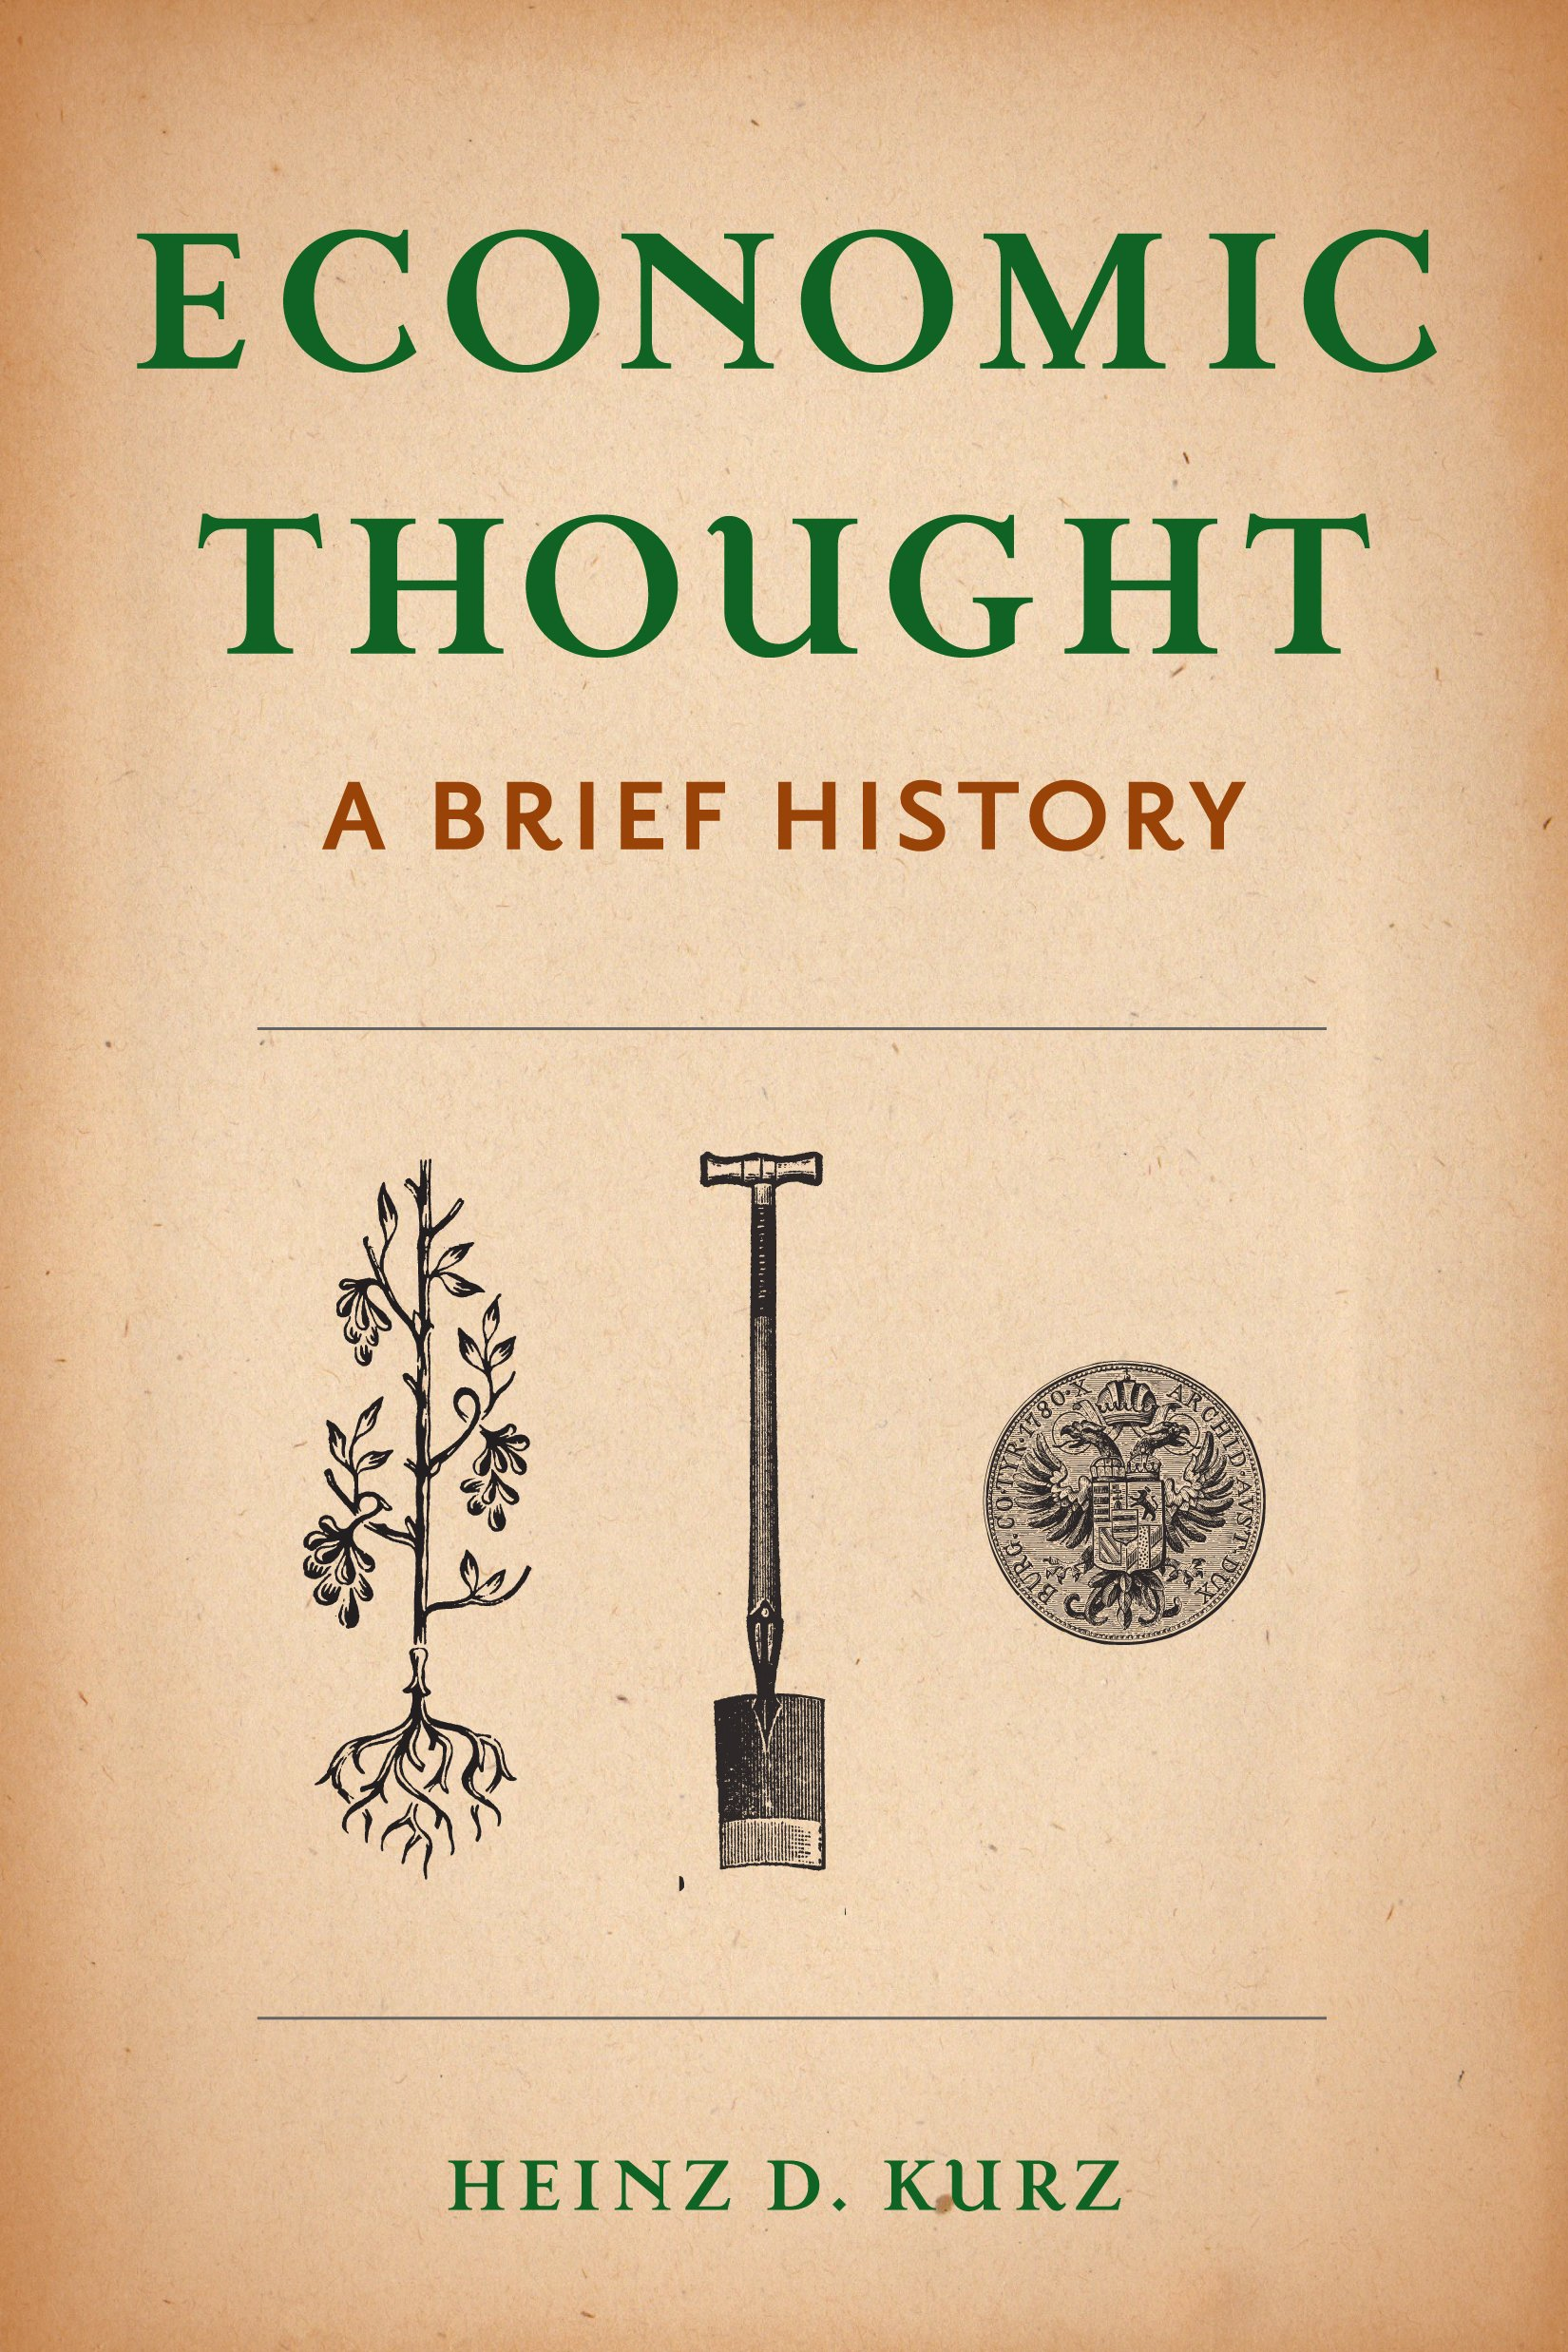 Economic Thought: A Brief History